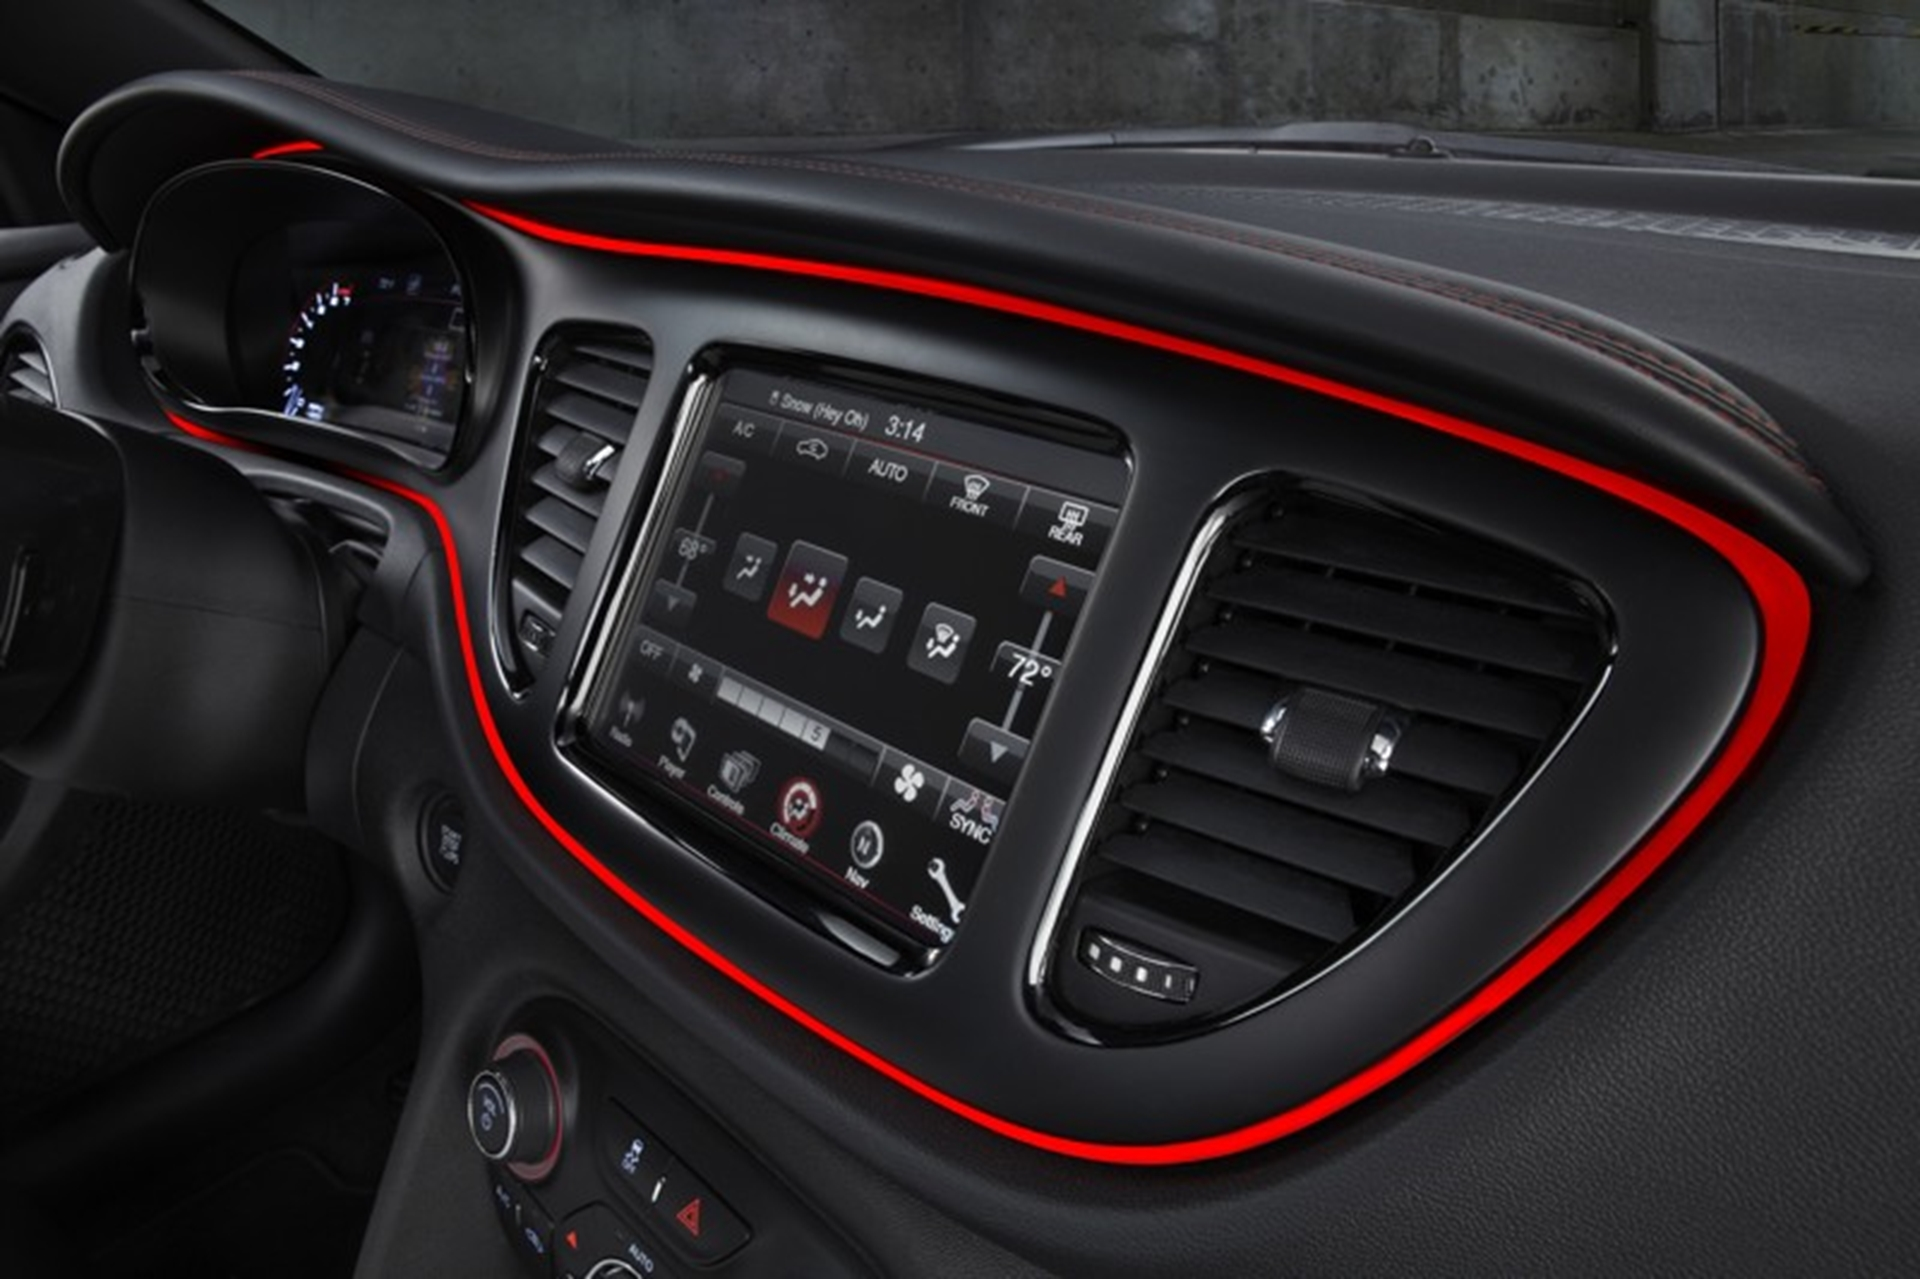 Dodge Dart dashboard